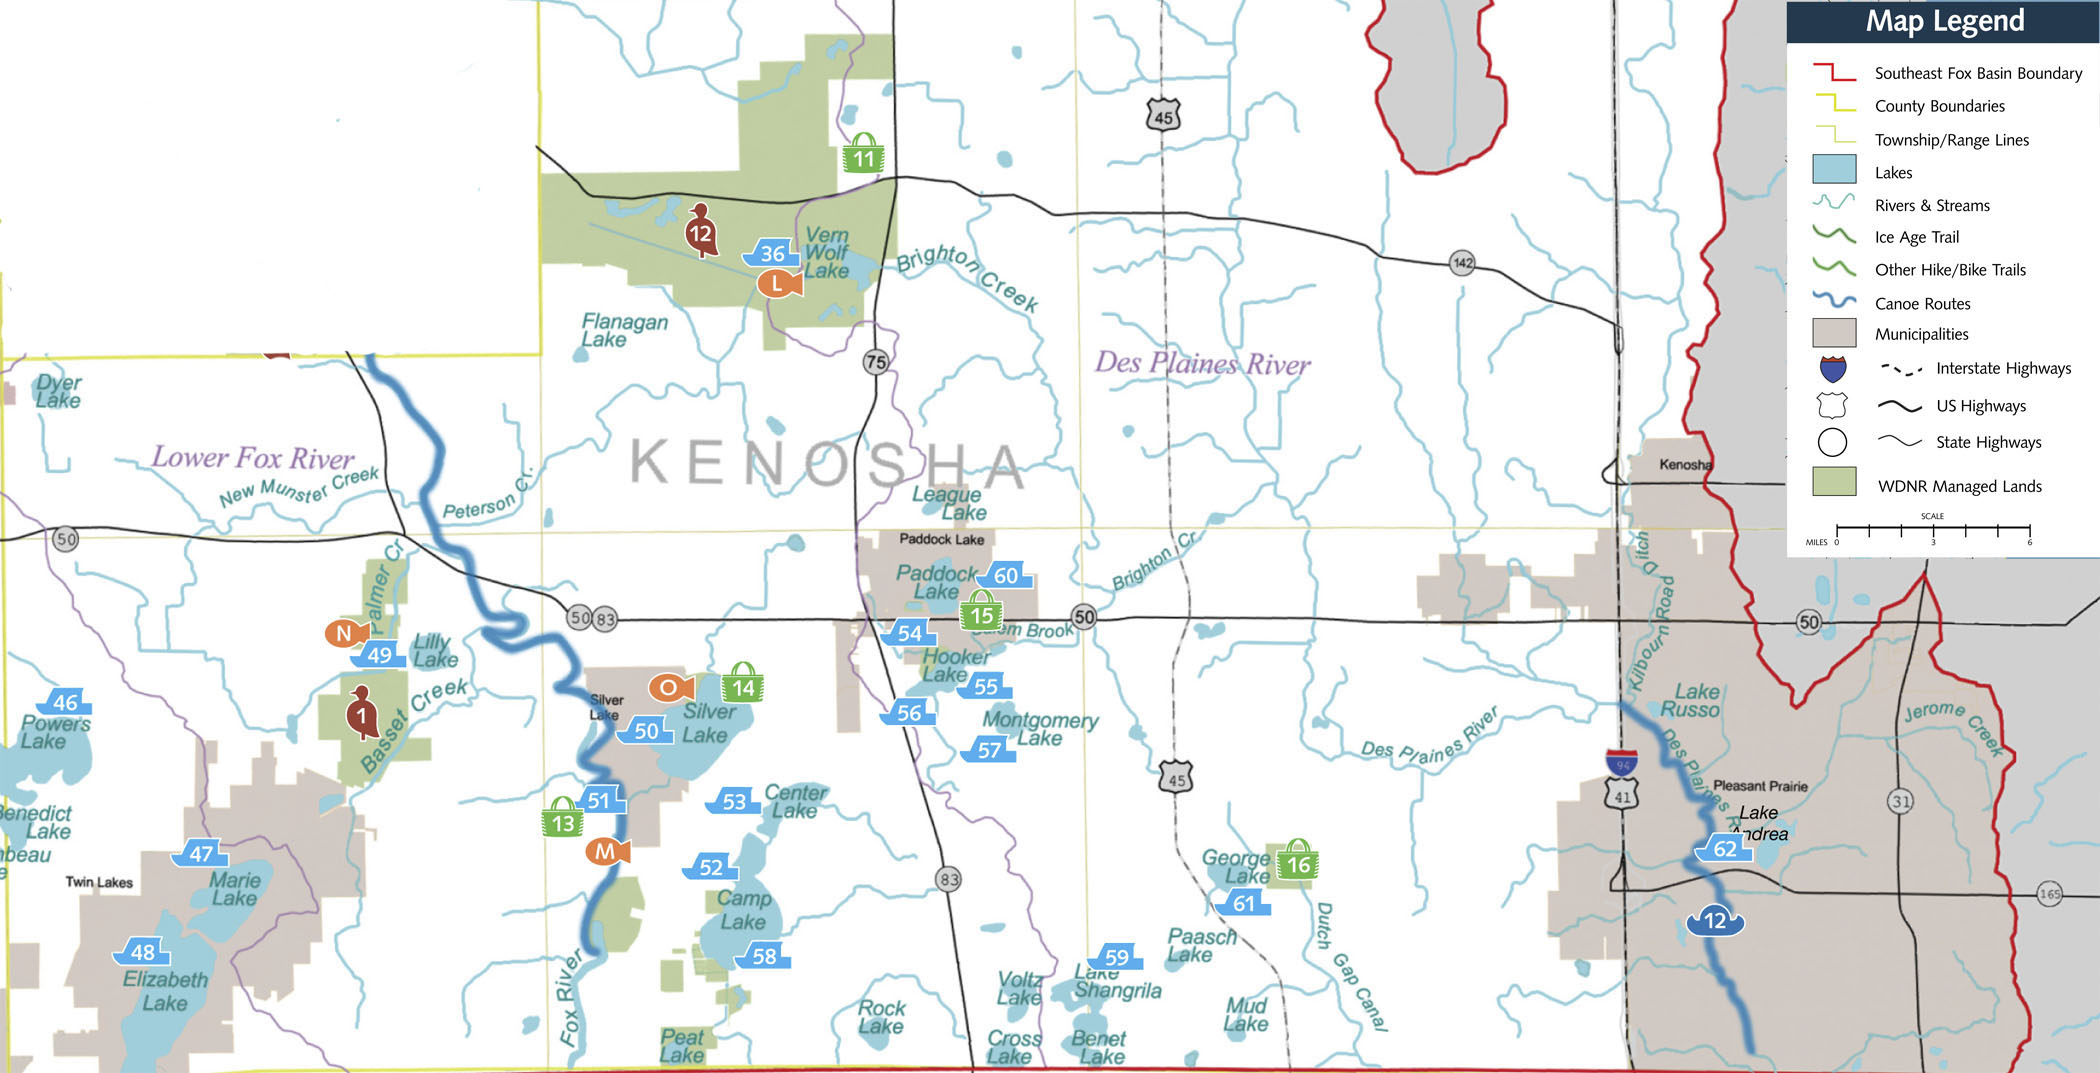 Kenosha County – Southeast Fox River Partnership on attleboro massachusetts on map, ann arbor michigan on map, bozeman montana on map, kenosha cowi map, kenosha wi, kenosha county map, huntsville alabama on map, portsmouth virginia on map, southeast wisconsin map, fargo north dakota on map, wisconsin county map, trout lake wisconsin map, everett washington on map, kenosha wisc, terre haute indiana on map, city of kenosha wisconsin map,